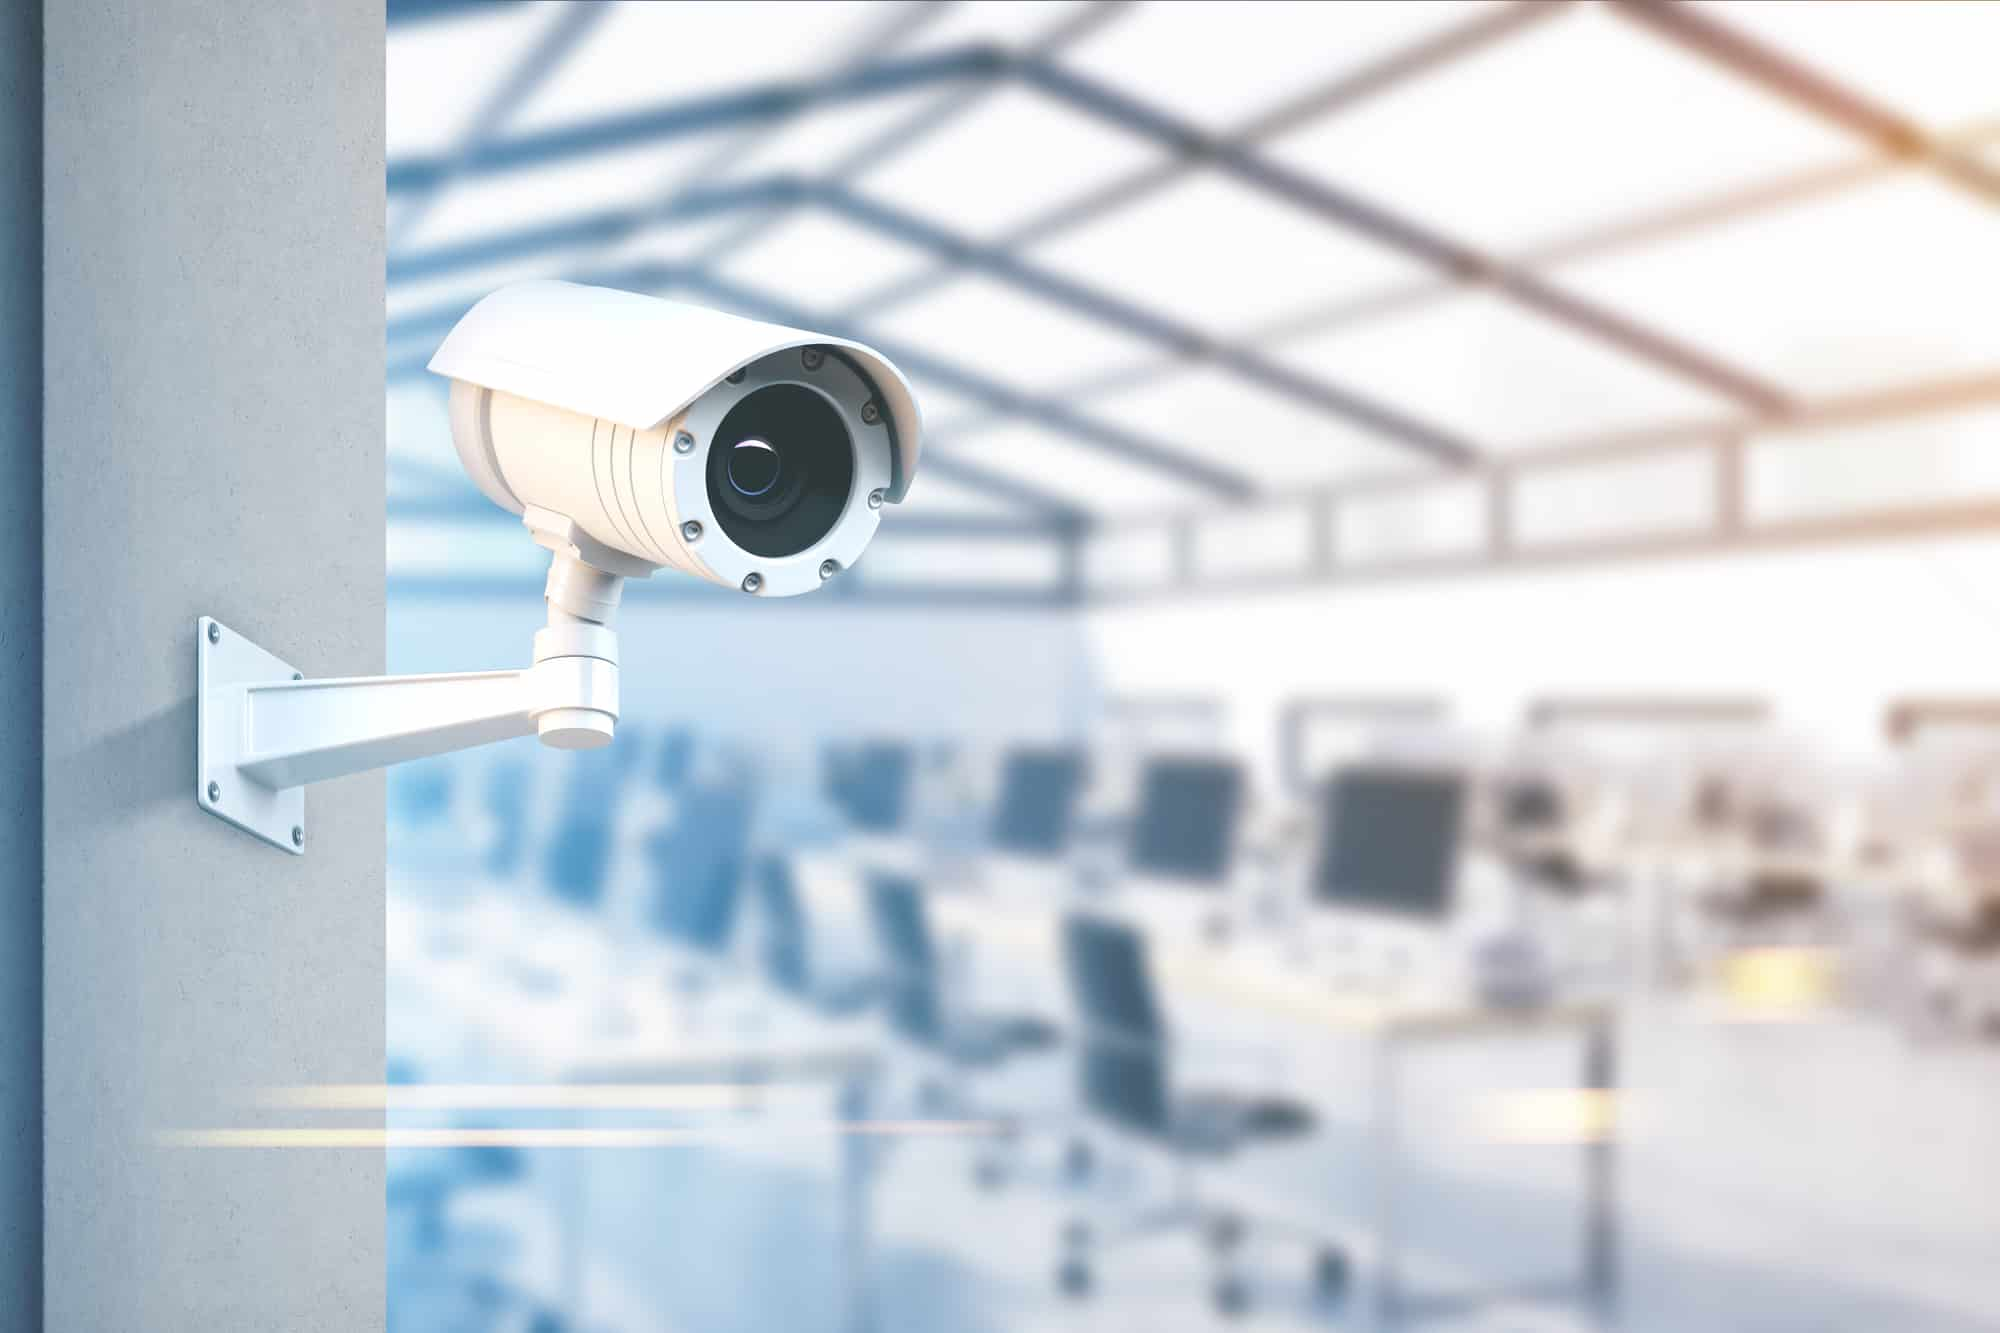 The 5 Best Security Cameras For Business Reviews 2020